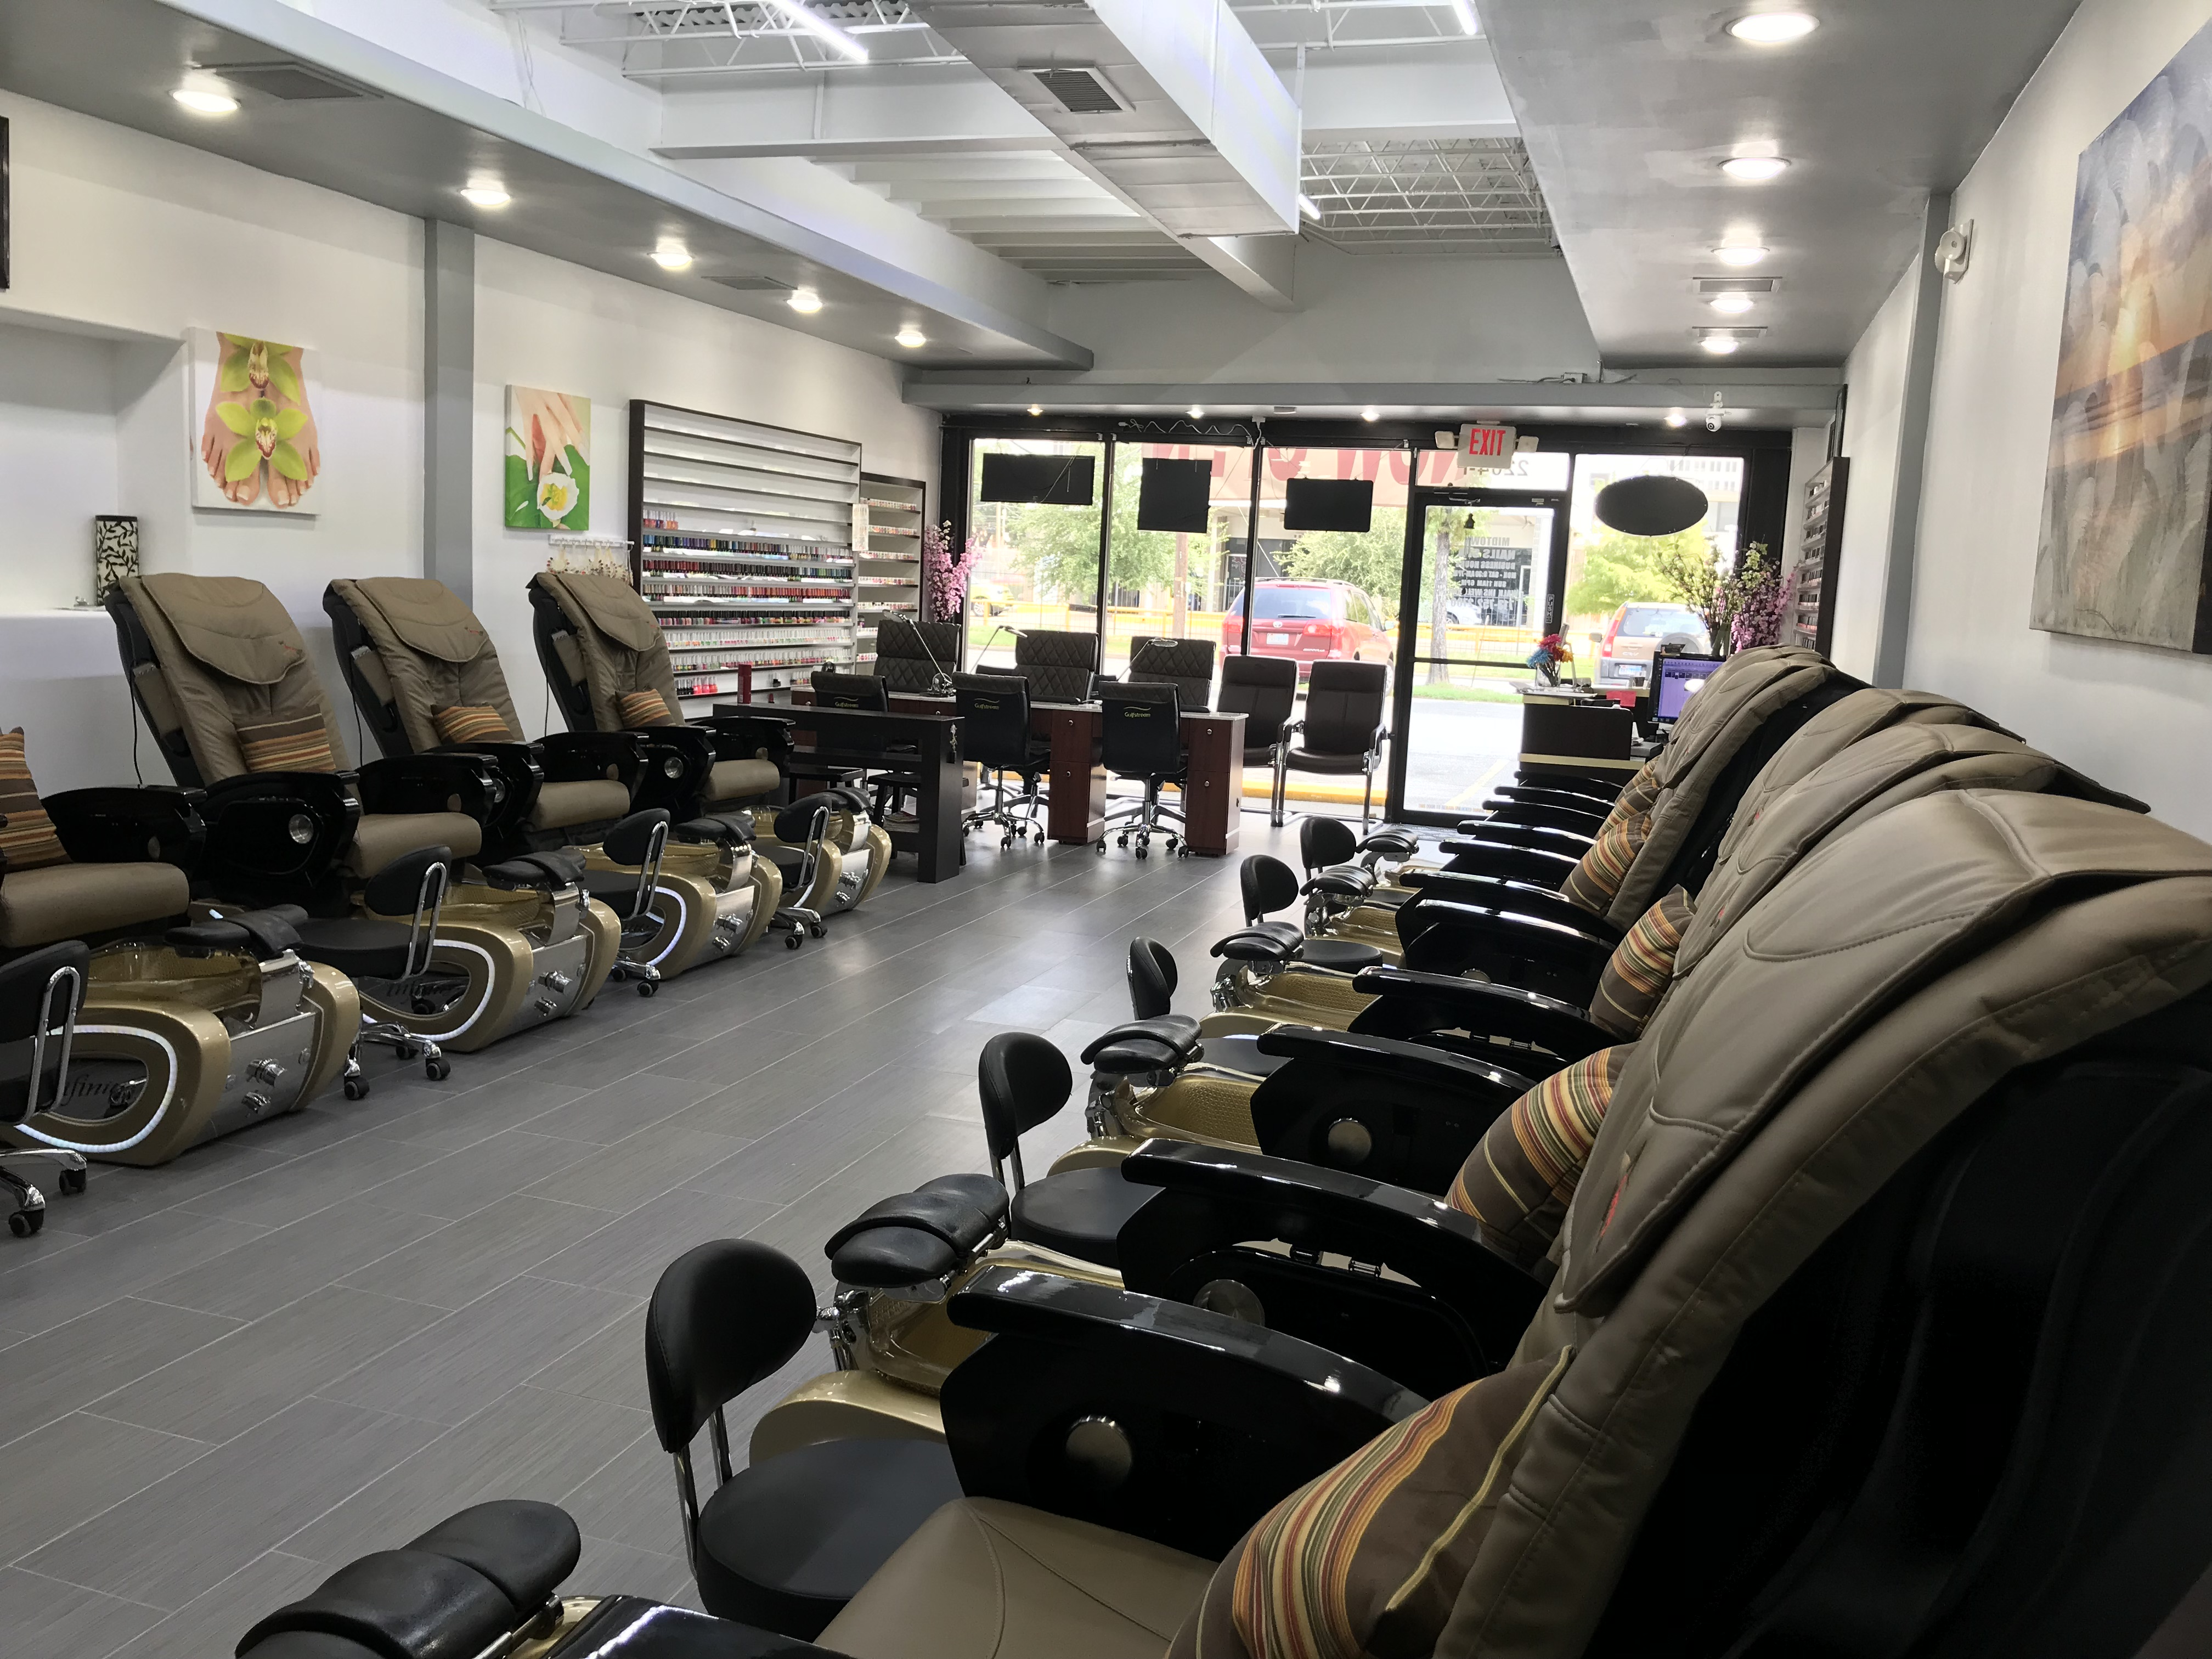 Spa chairs and manicure tables